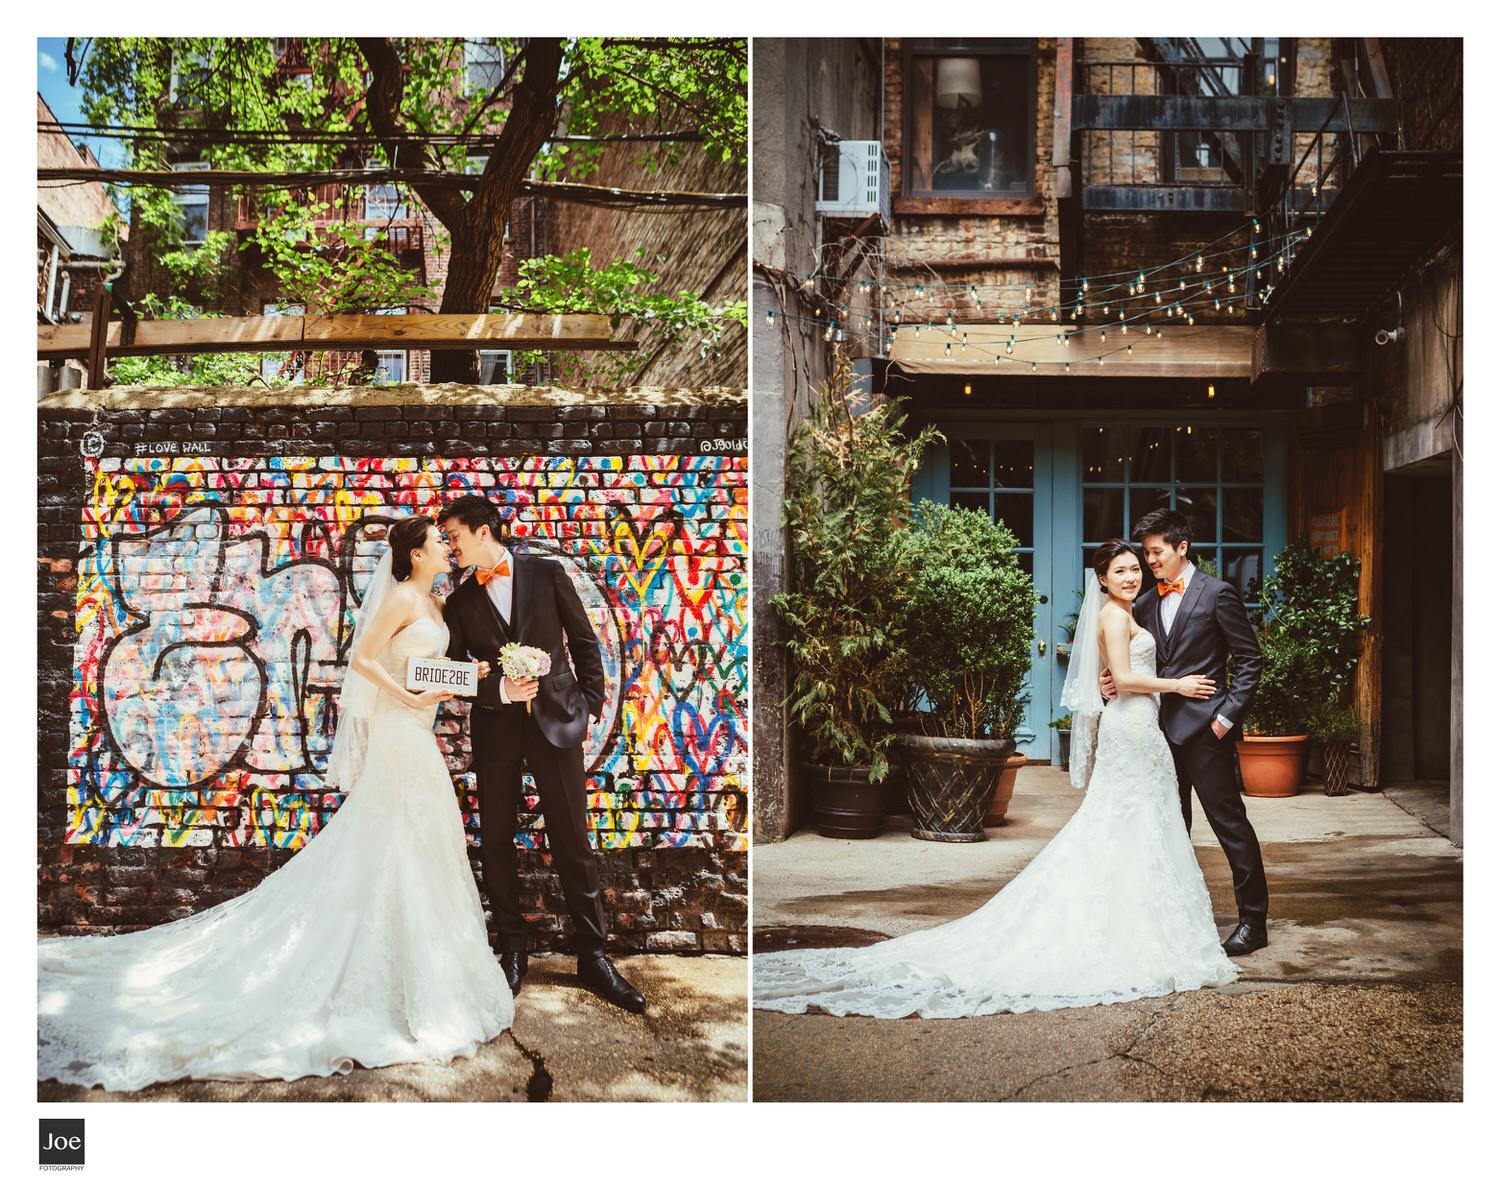 joefotography-15-newyork-pre-wedding-cindy-larry.jpg